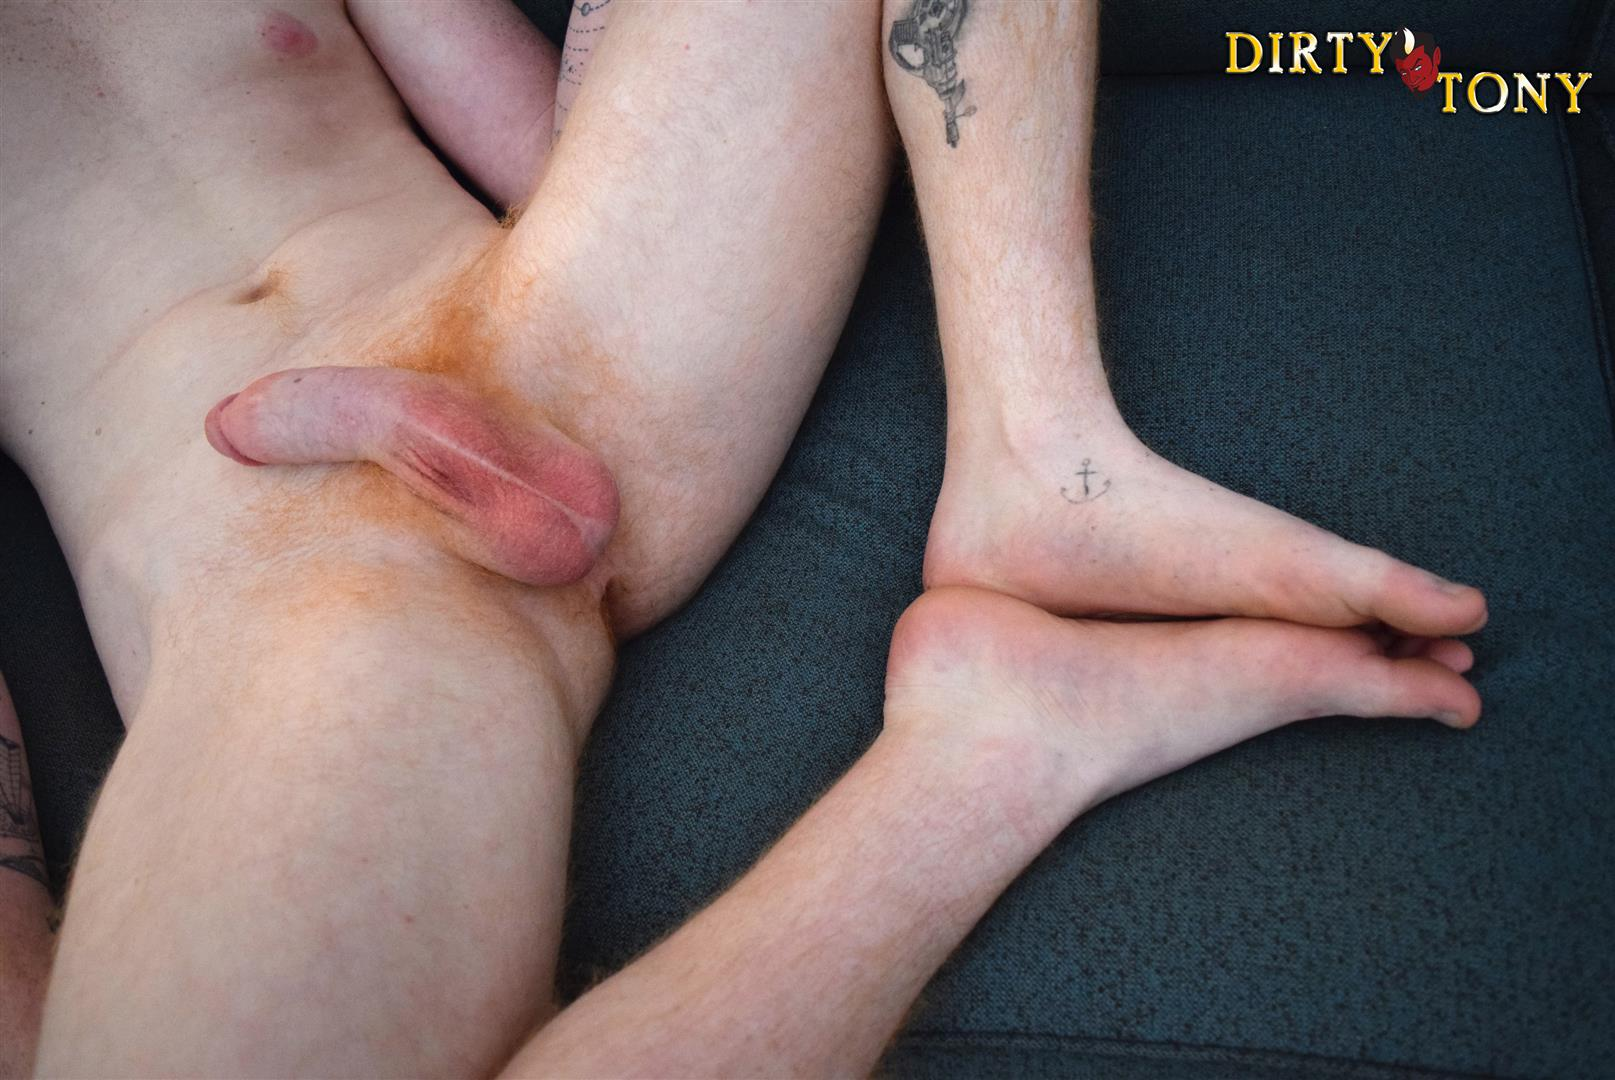 Dirty Tony Max Breeker Redheaded Twink Masturbation Amateur Gay Porn 07 Bisexual 19 Year Old Redheaded Twink Auditions For Gay Porn